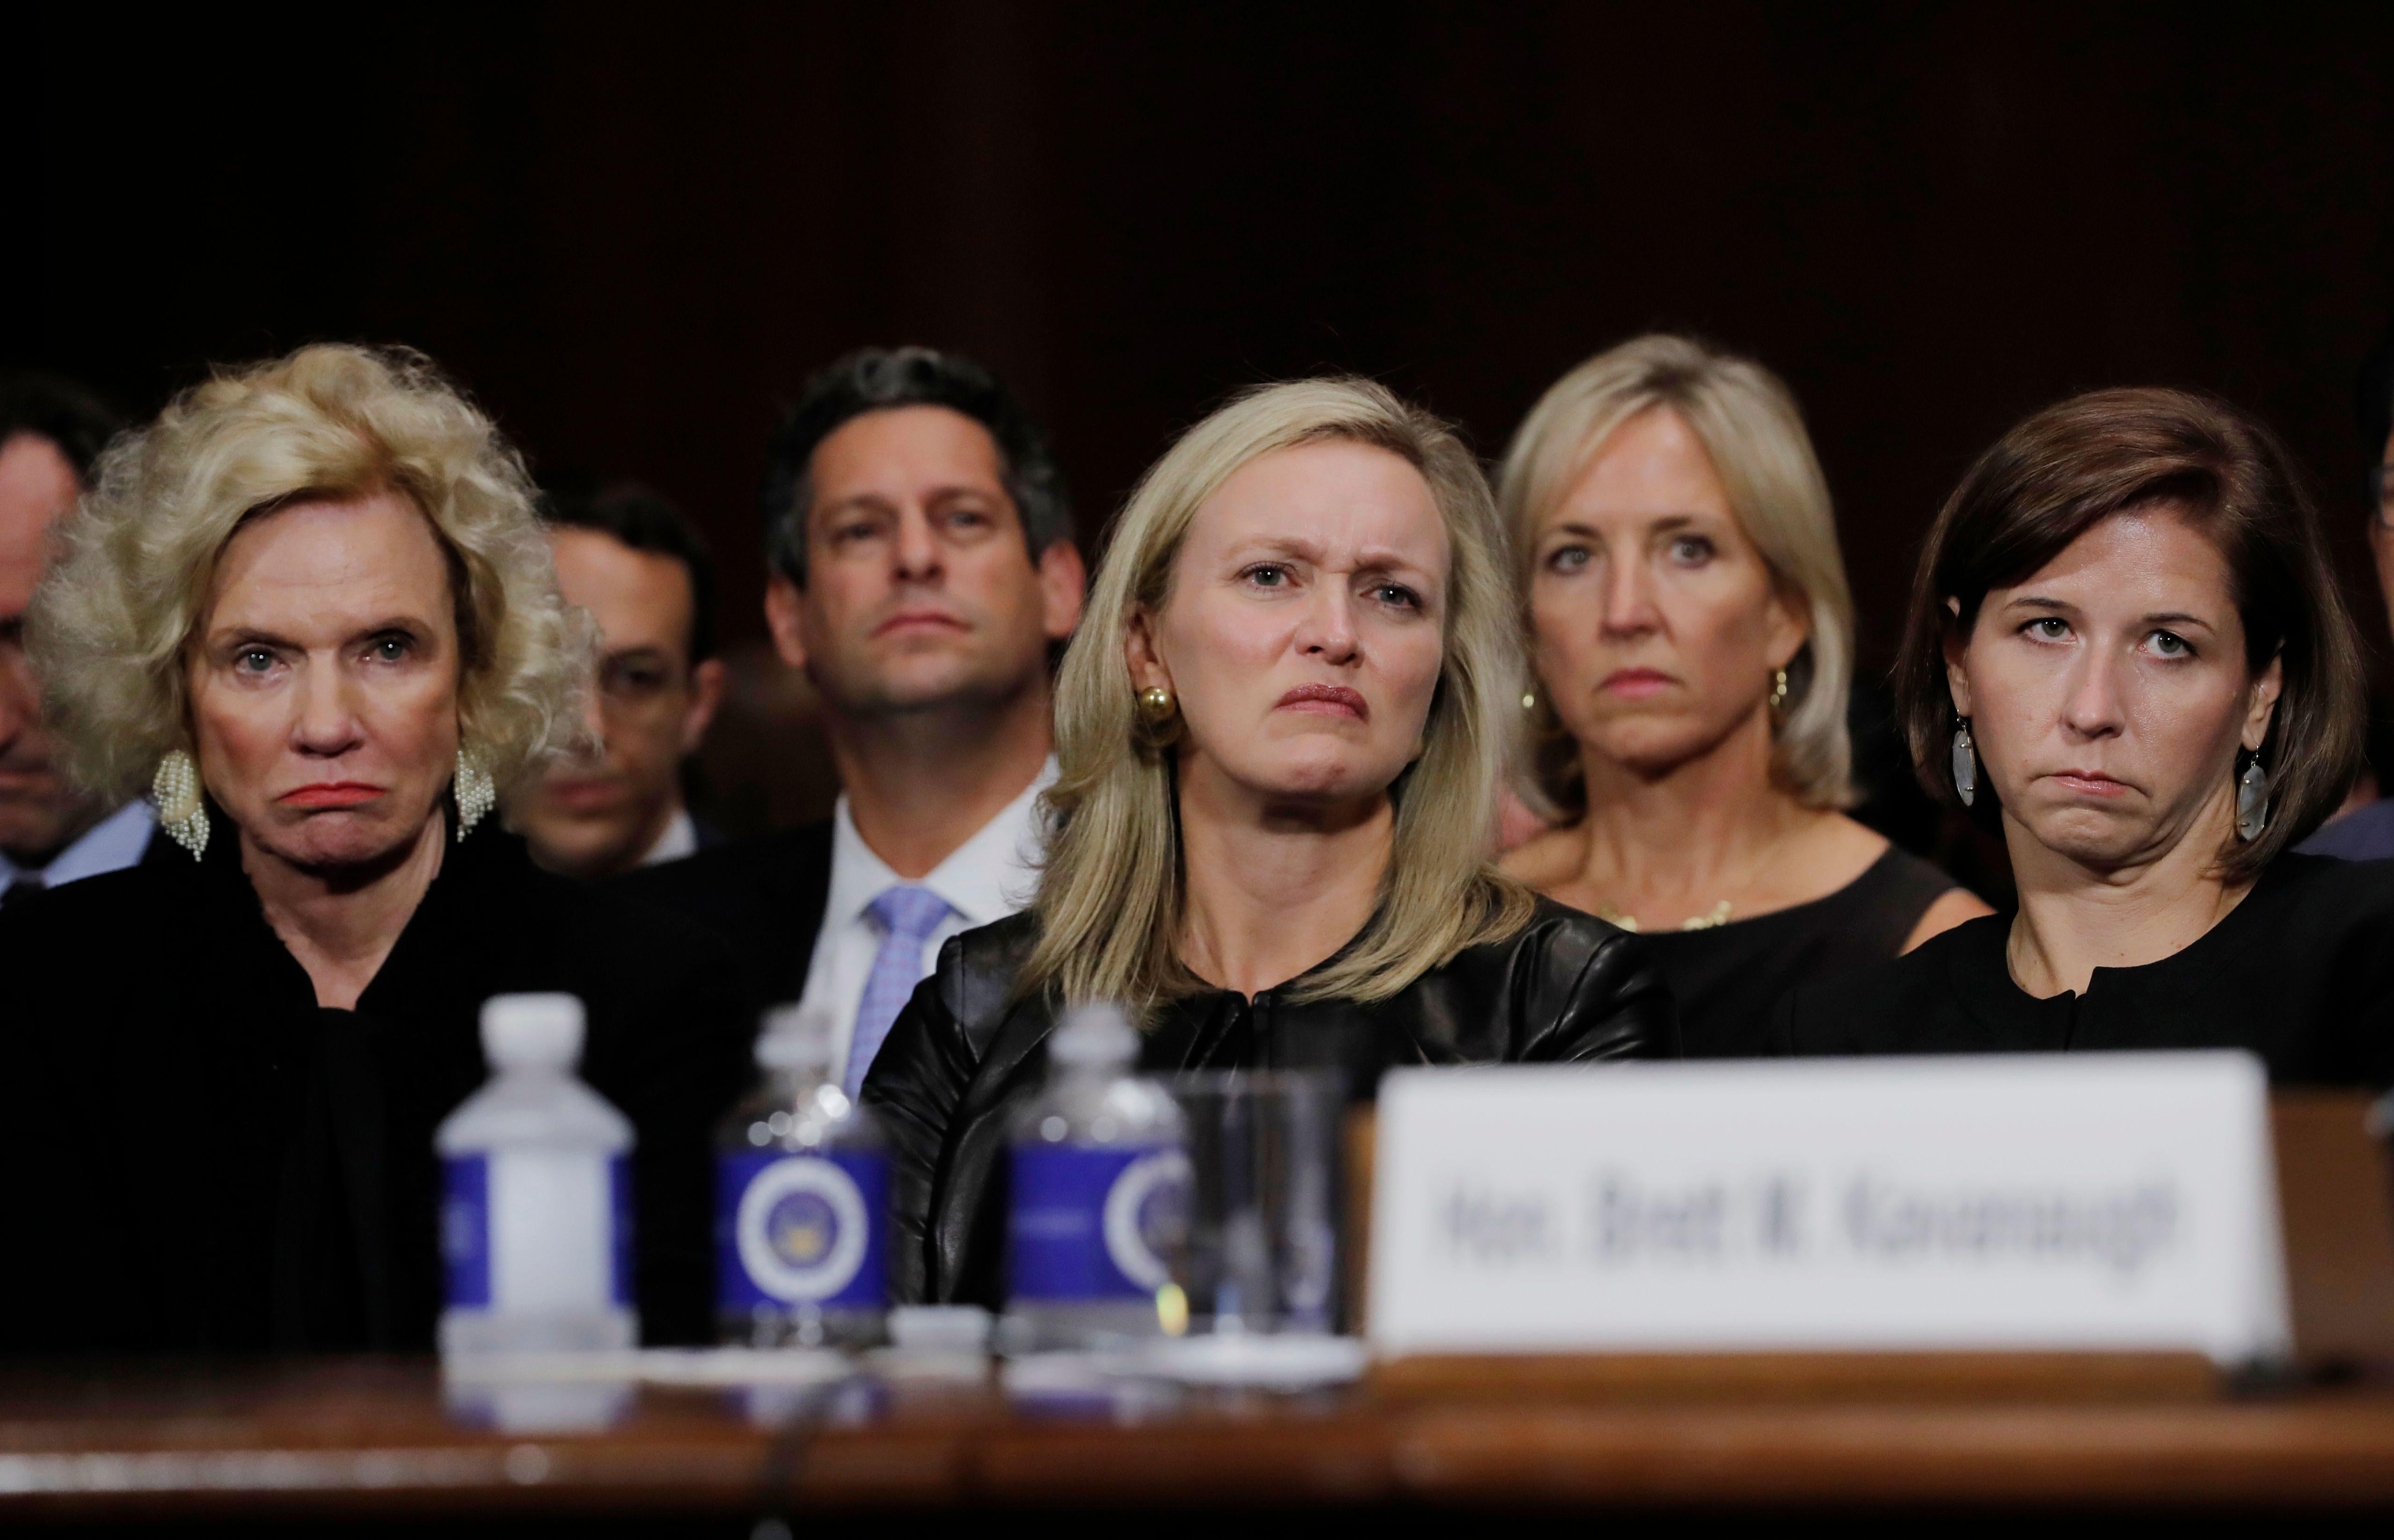 (L-R) Martha Kavanaugh, Laura Cox Kaplan, and Ashley Kavanaugh, listen as Judge Brett M. Kavanaugh testifies in front of the Senate Judiciary committee regarding sexual assault allegations at the Dirksen Senate Office Building on Capitol Hill on September 27, 2018 in washington,DC. - University professor Christine Blasey Ford, 51, told a tense Senate Judiciary Committee hearing that could make or break Kavanaugh's nomination she was '100 percent' certain he was the assailant and it was 'absolutely not' a case of mistaken identify. (Photo by JIM BOURG / POOL / AFP)        (Photo credit should read JIM BOURG/AFP/Getty Images)